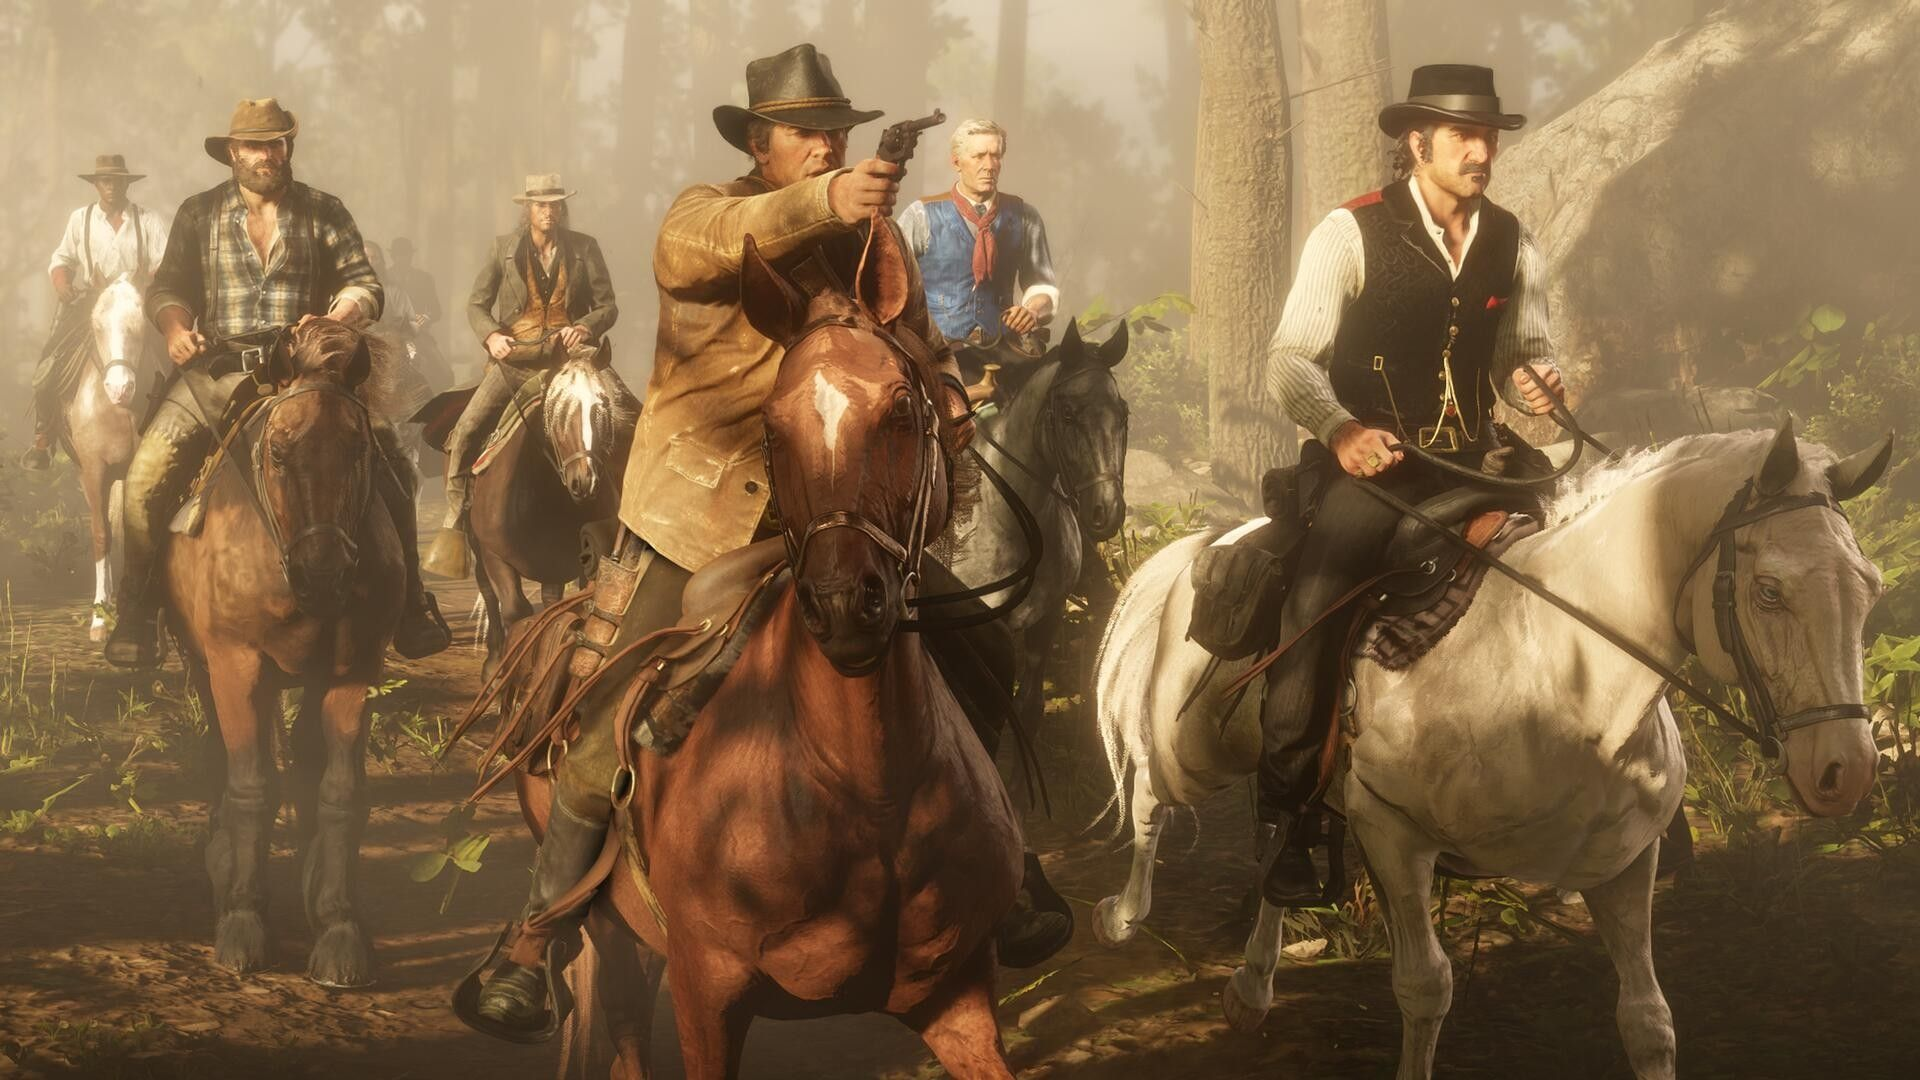 Pin by Emily Markgraf on Gaming Red dead redemption